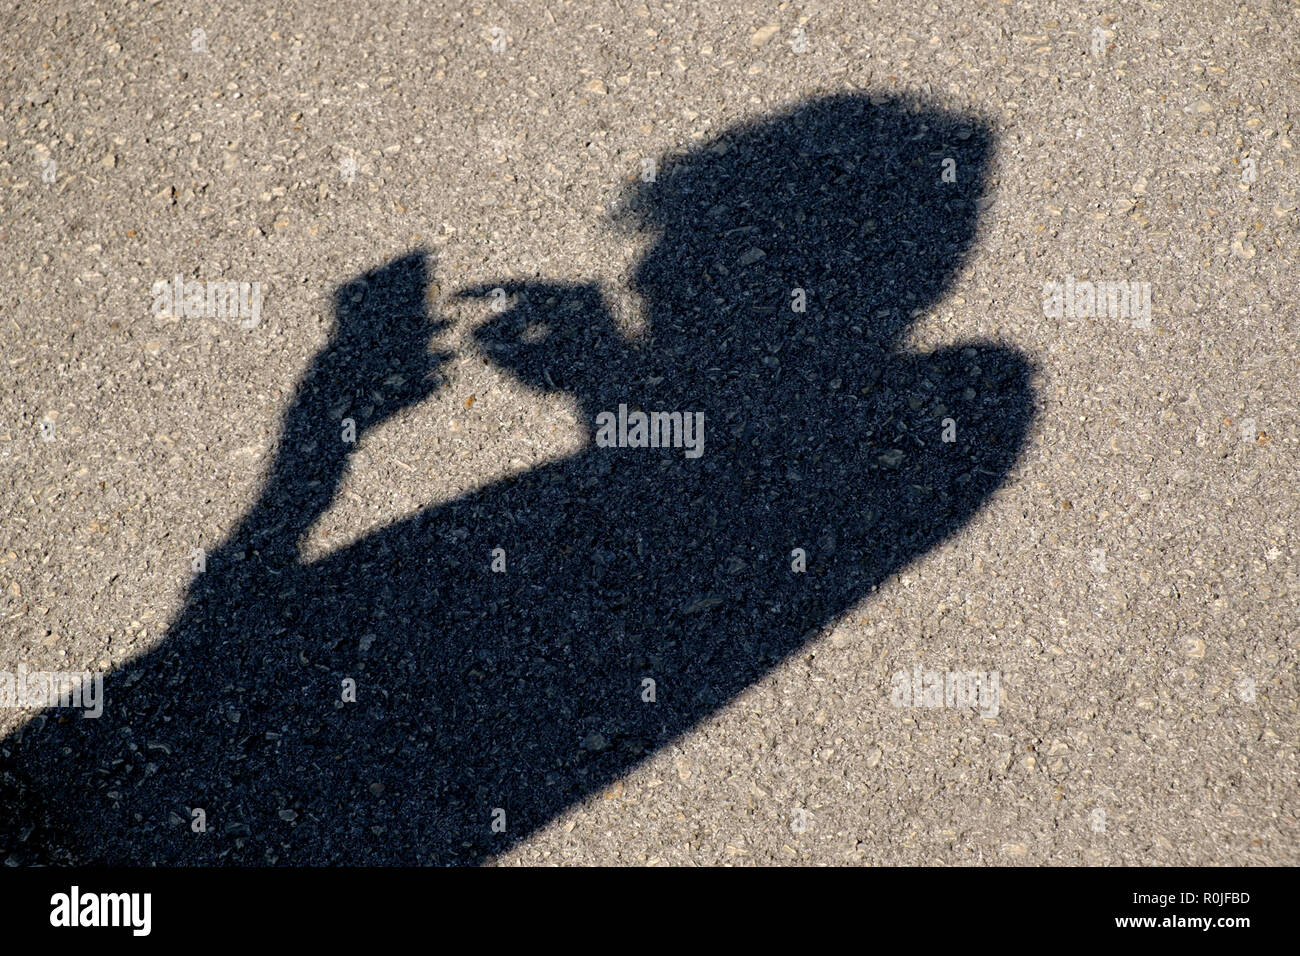 Shadow of a person using a smartphone with bad posture - Stock Image